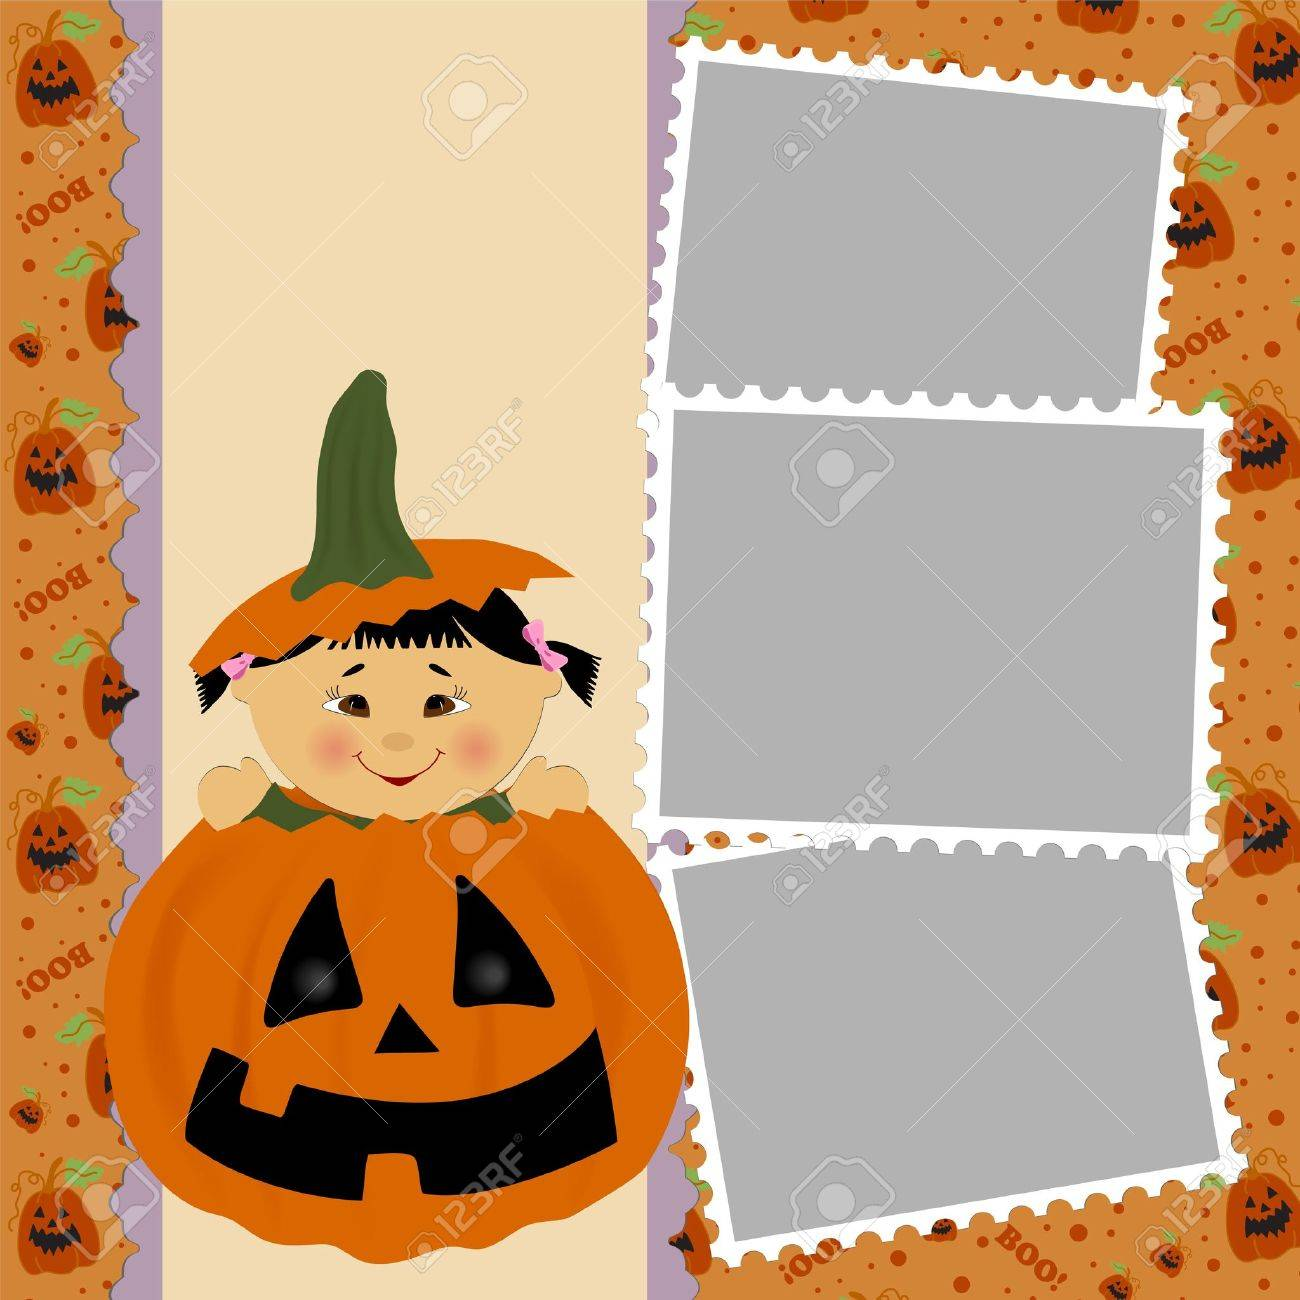 Blank template for halloween photo frame greetings card or blank template for halloween photo frame greetings card or postcard stock vector 8181070 kristyandbryce Images